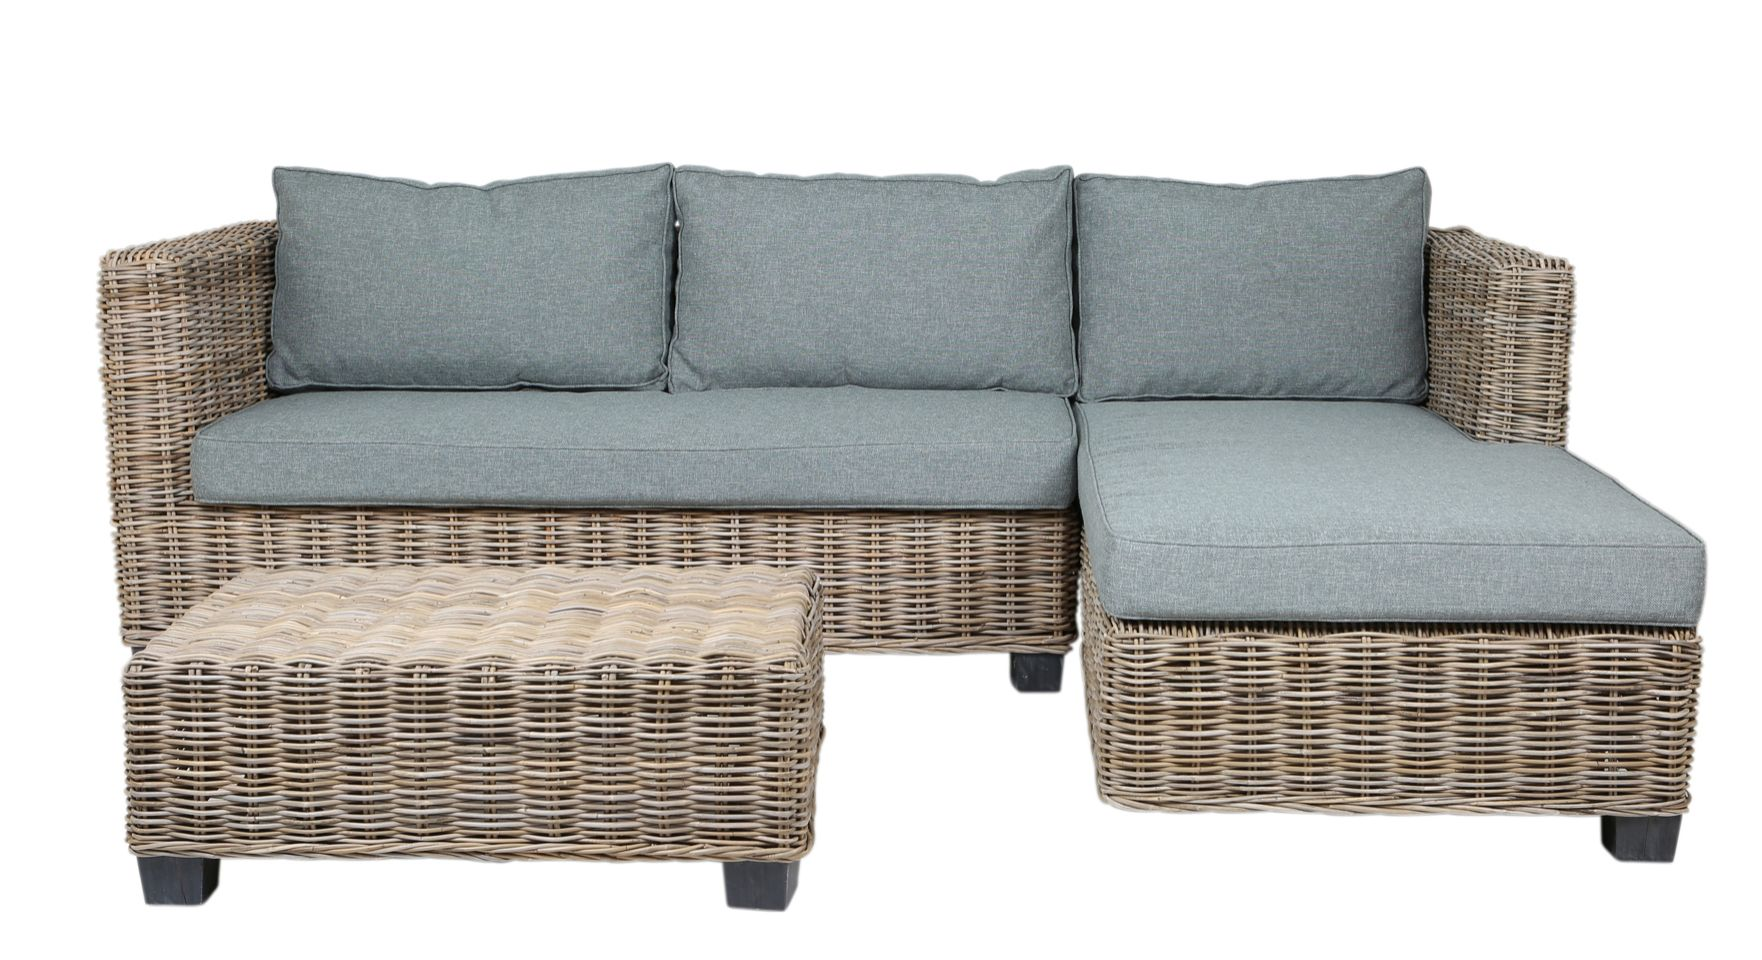 SALE - Rotan loungebank